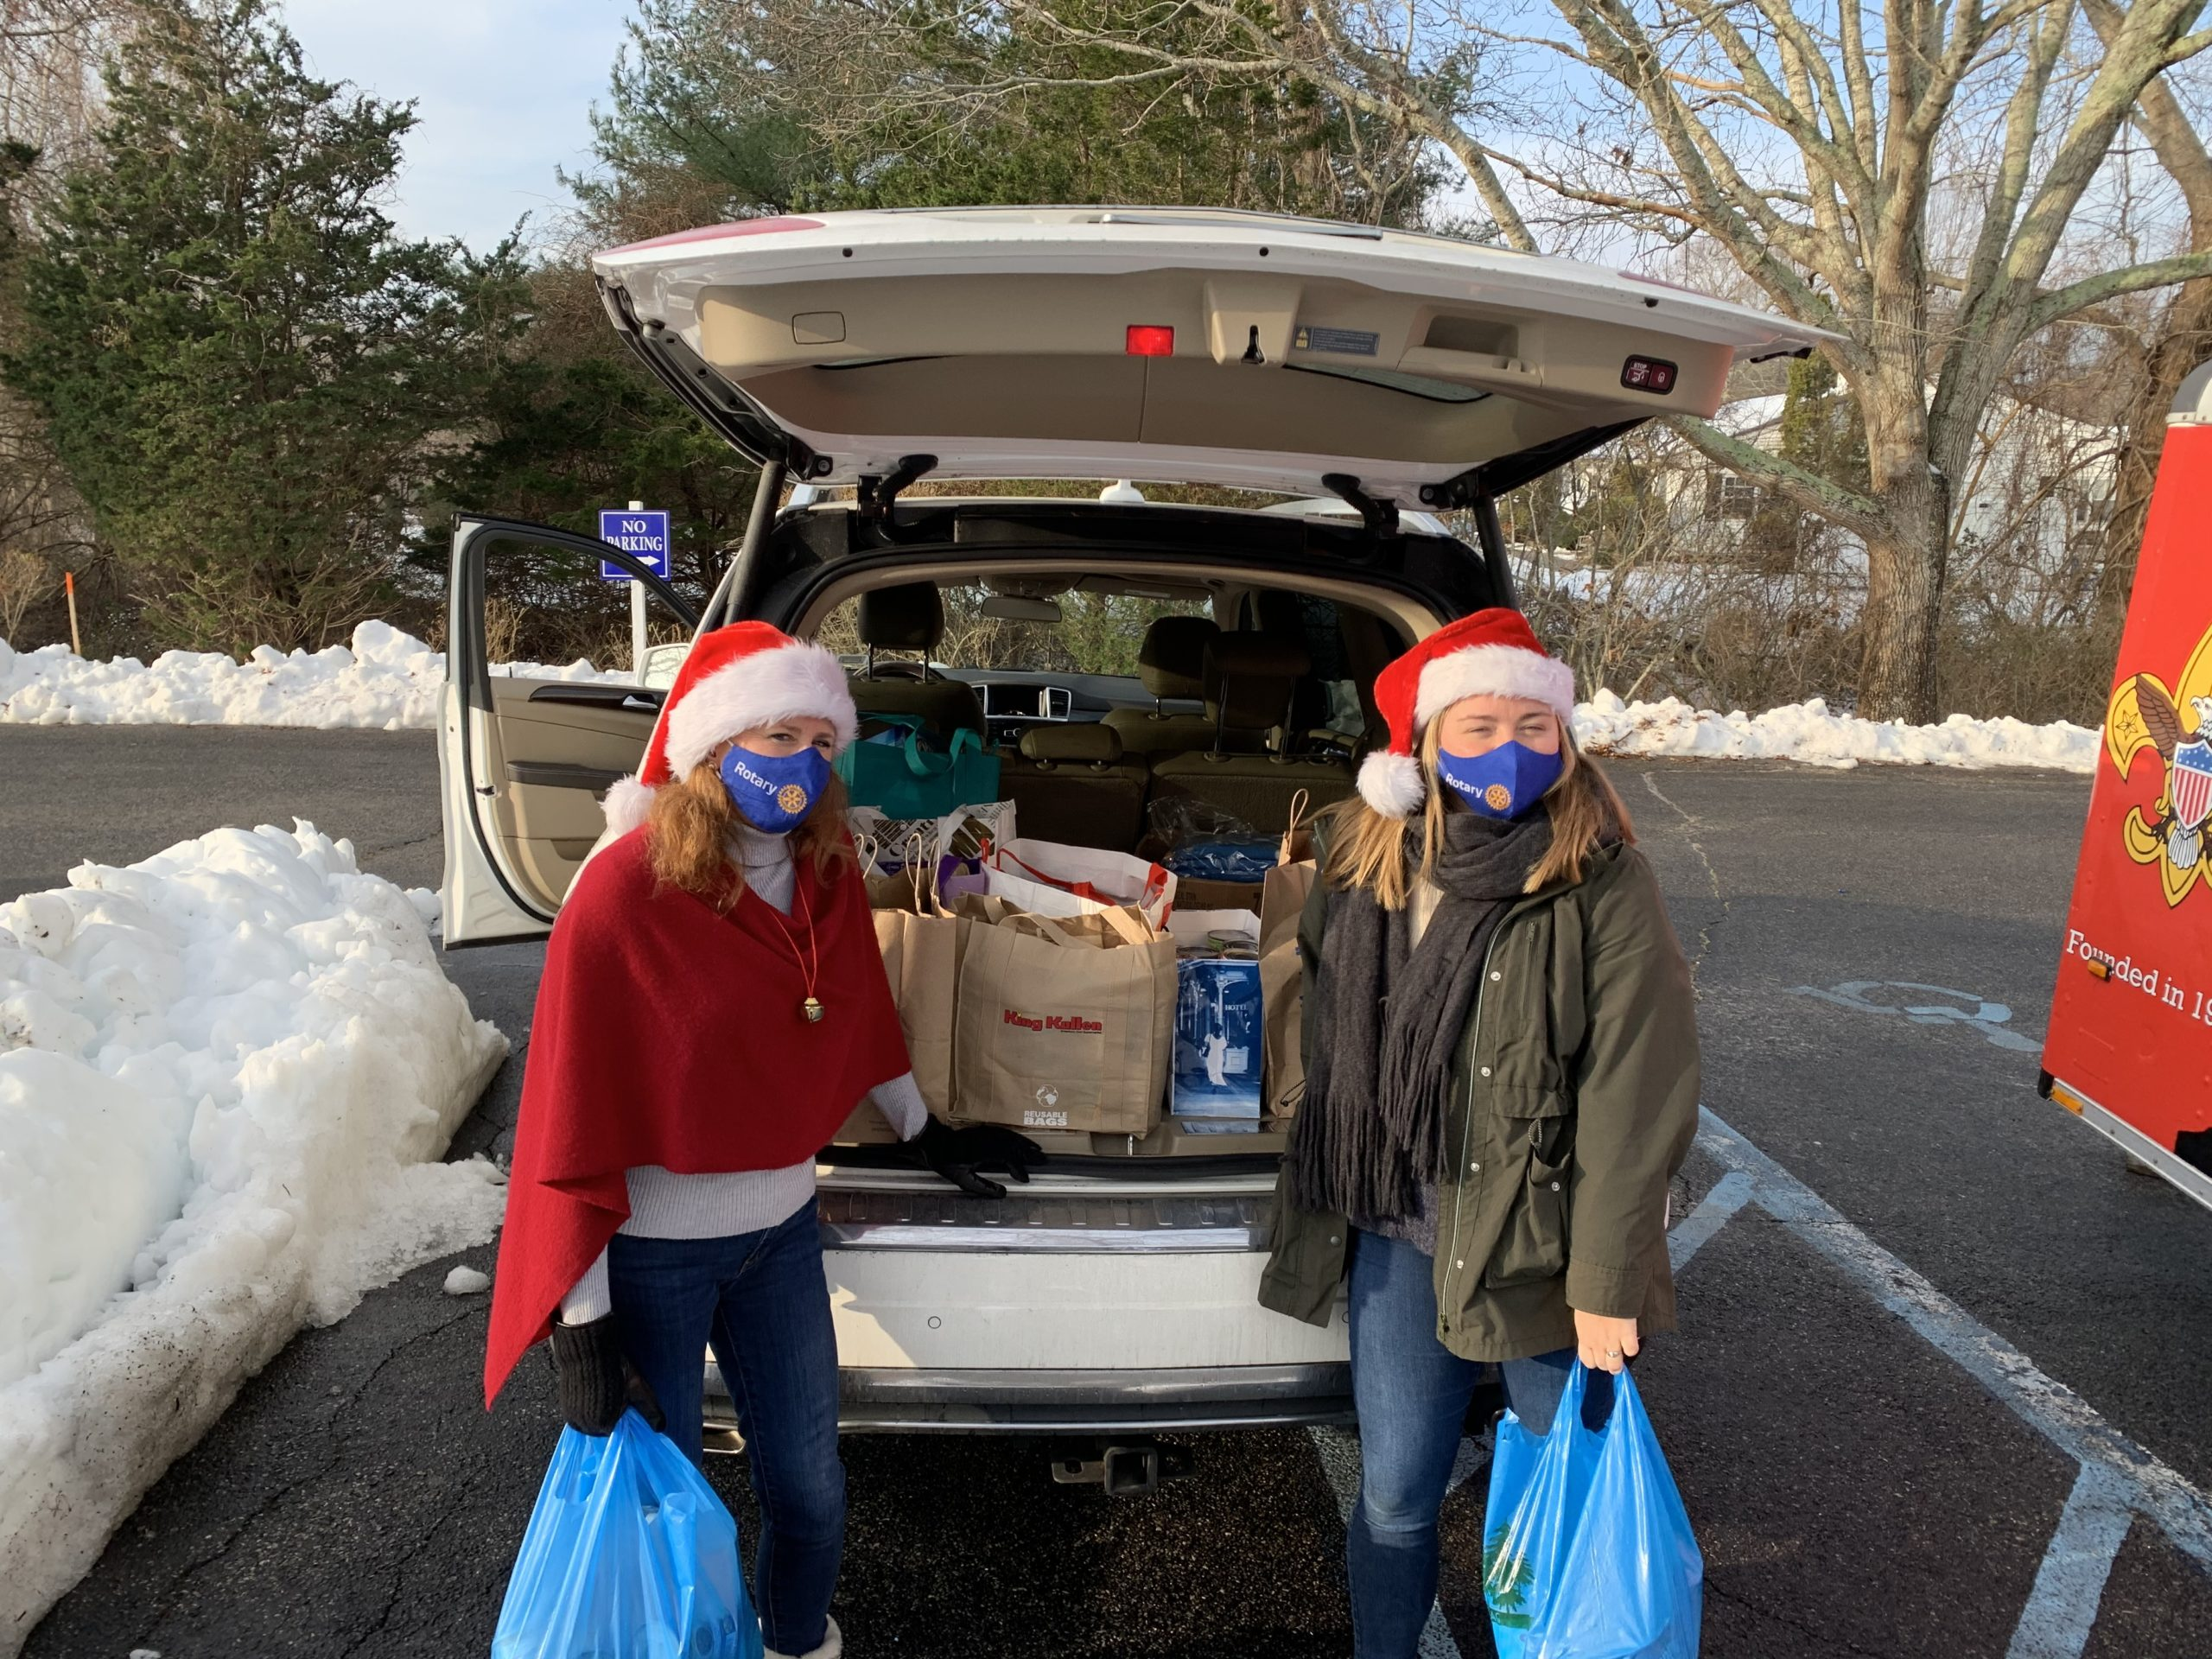 "The Hampton Bays Rotary, including Anna and Julie Crowley, donated 13 heavy bags of food and $155 to the Hampton Bays Food Pantry as a part of the Rotary District 7255 and Hampton Bays Rotary ""25 Days of Giving."" St. Rosalie's Food Pantry serves many people in the Hampton Bays and East Quogue communities and during these difficult times we are extra grateful for their support. Catherine Andrejack, the director of the pantry, reports the pantry is serving about 500 people a month and is accepting financial donations as well as fresh produce and dairy items. To donate, contact the outreach office at 631-728-9461, ext. 15."